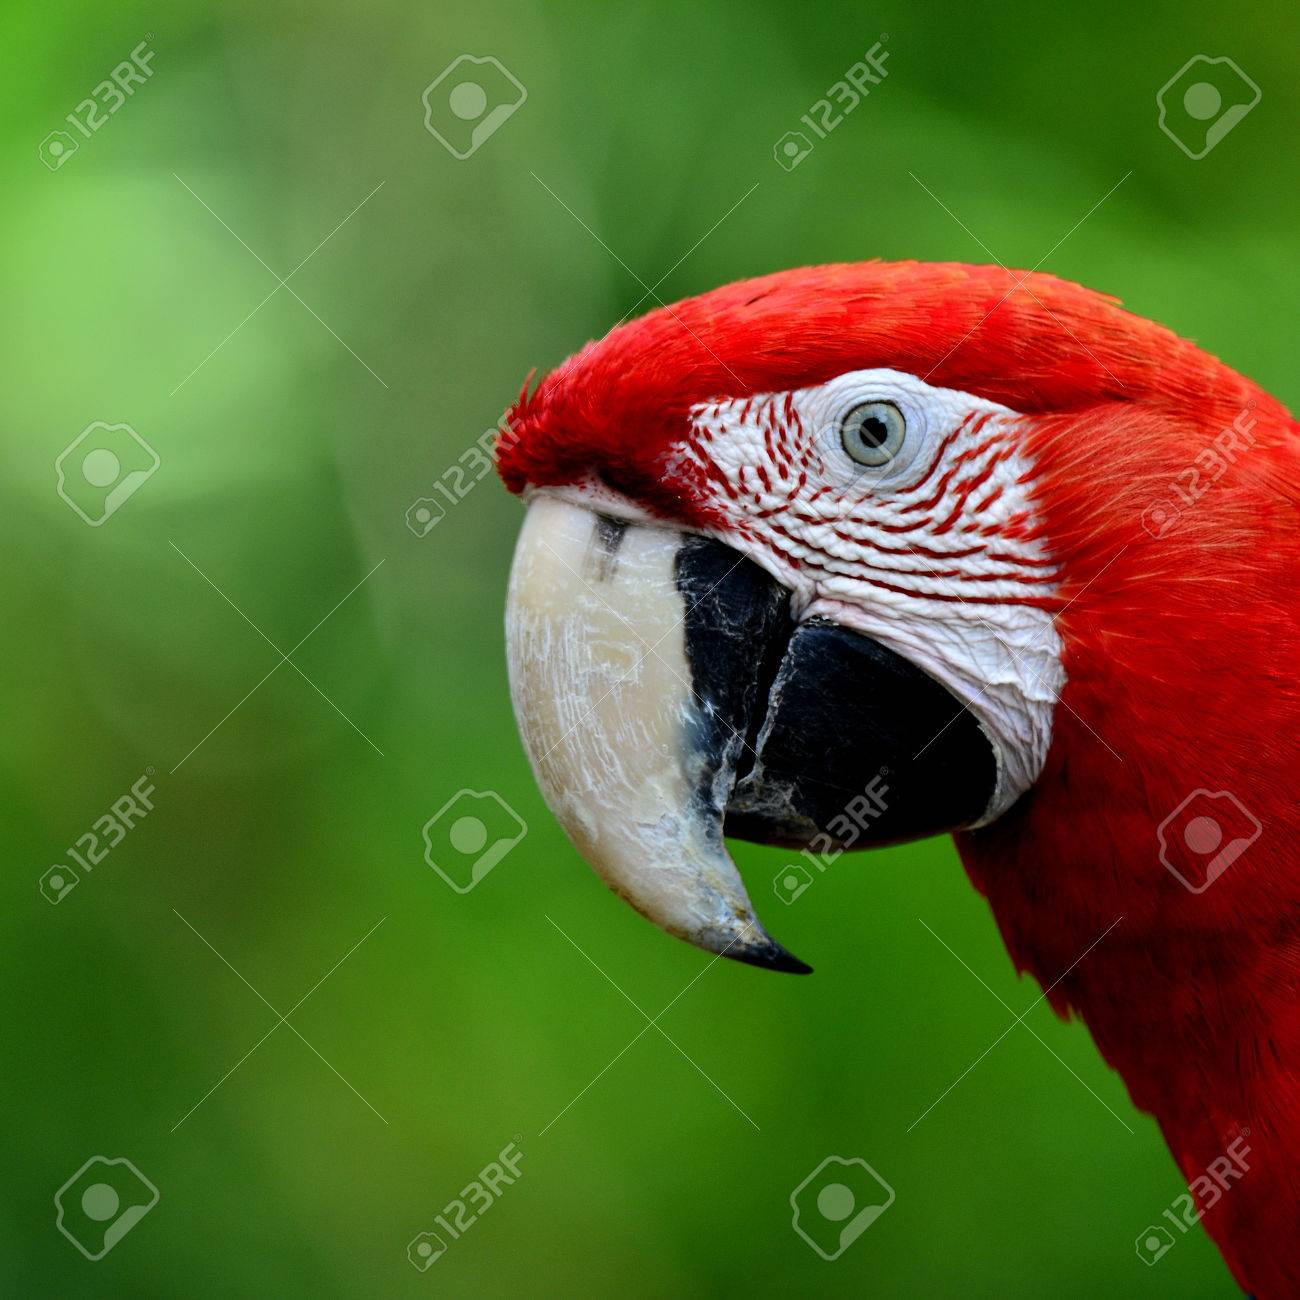 Closeup Face Of Red And Green Macaw Parrot Bird Green Winged Stock Photo Picture And Royalty Free Image Image 26201112